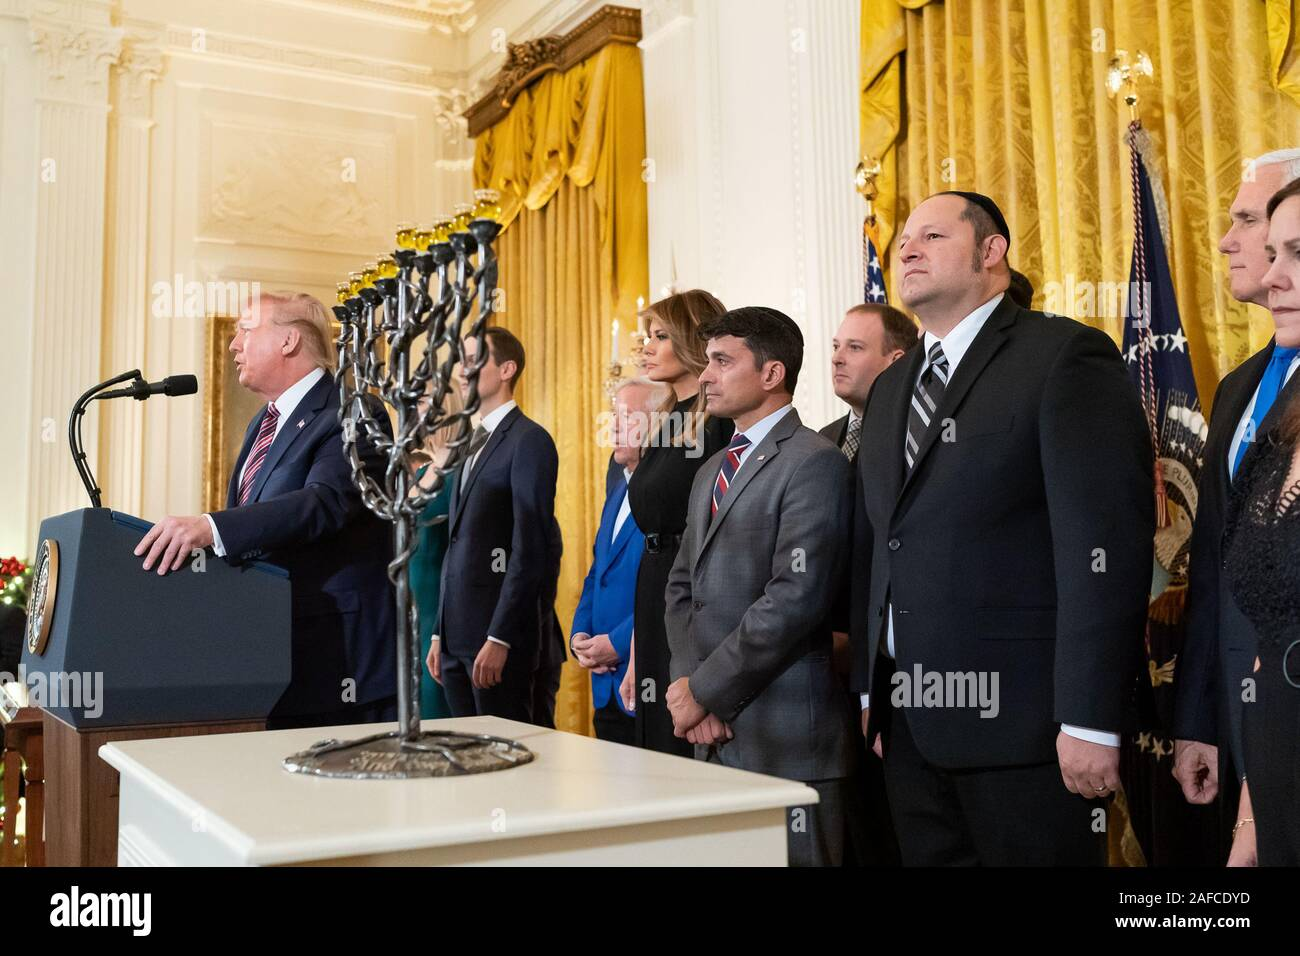 Washington, United States Of America. 11th Dec, 2019. President Donald J. Trump, joined by First Lady Melania Trump, delivers remarks at a Hanukkah Reception Wednesday, Dec. 11, 2019, in the East Room of the White House. People: President Donald J. Trump, First Lady Melania Trump Credit: Storms Media Group/Alamy Live News Stock Photo